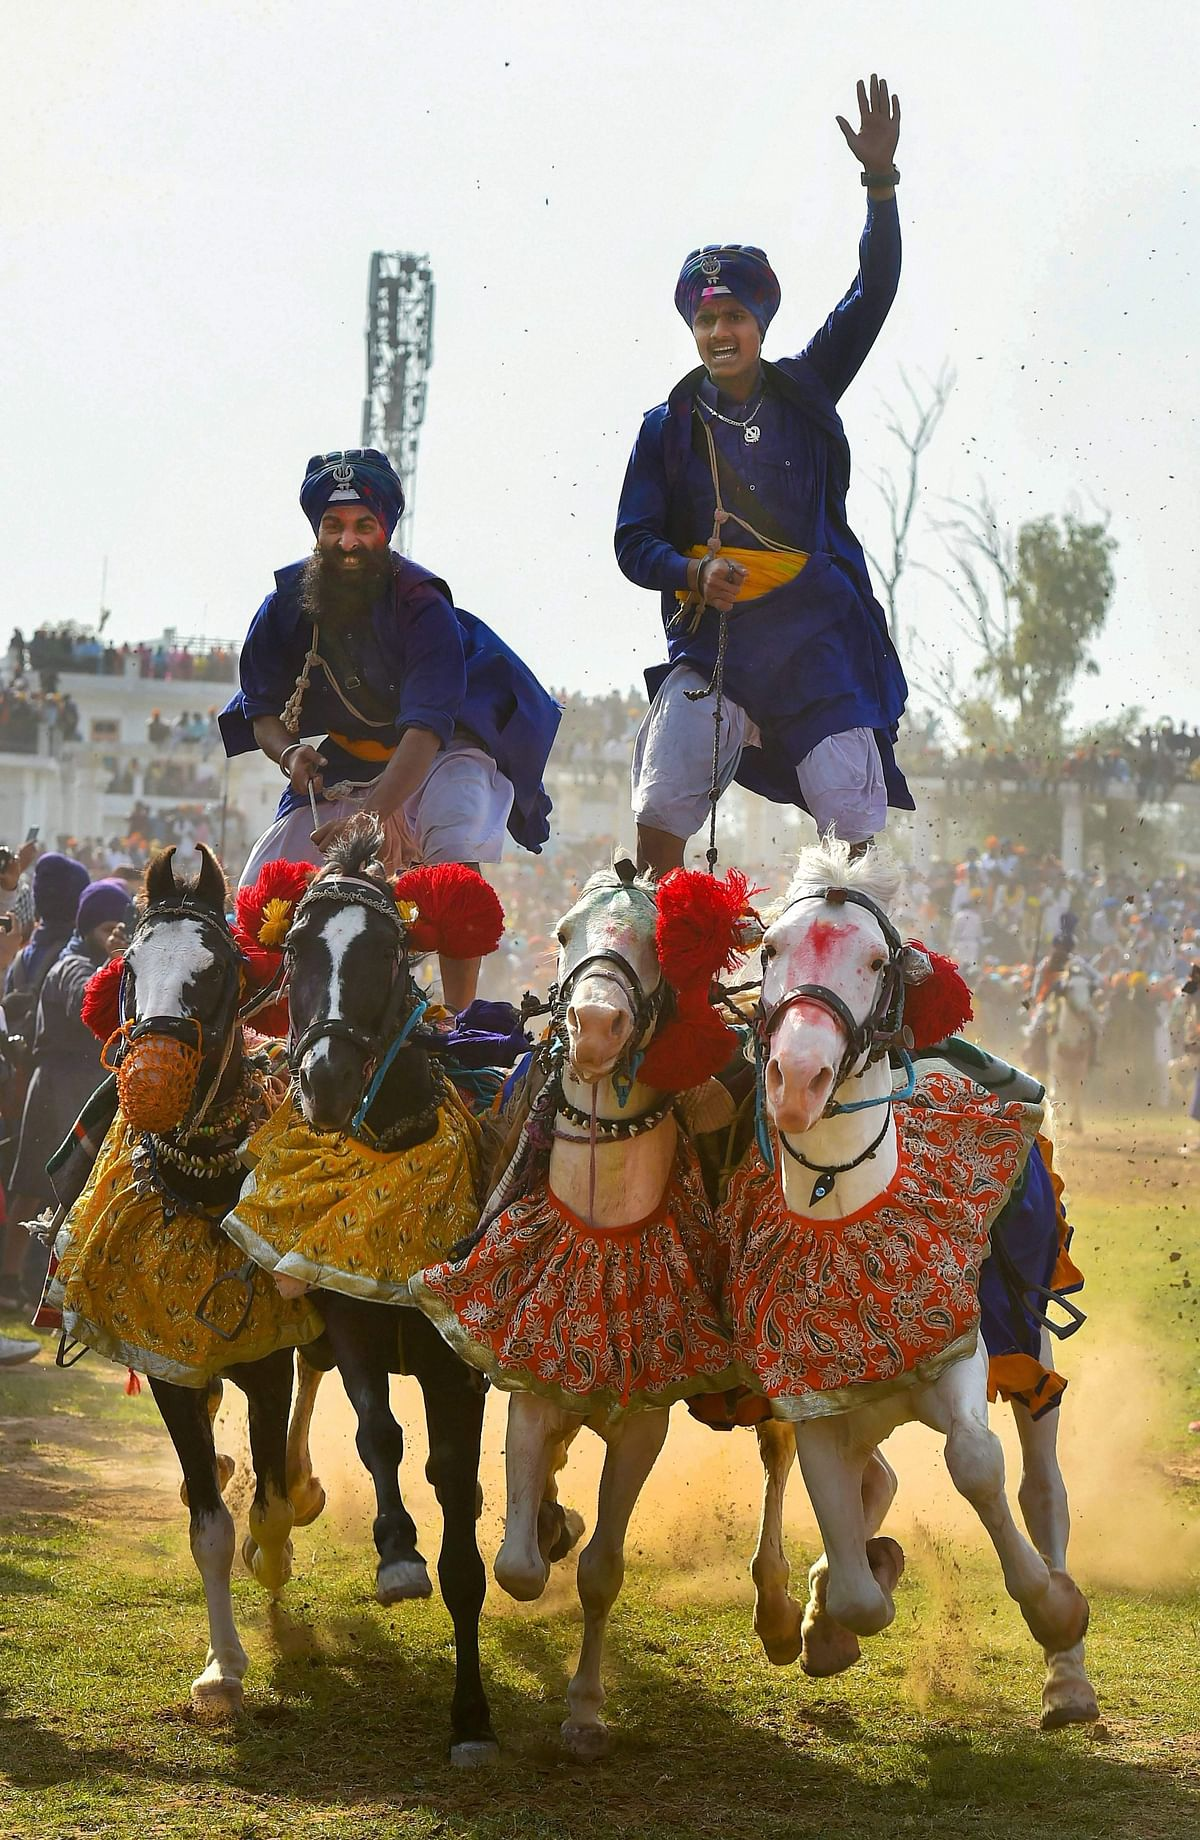 In the Holla Mohalla festival, lakhs of Sikhs participate to exhibit their abilities to combat, engage in martial arts, use the bow and arrow, ride horses and other activities.